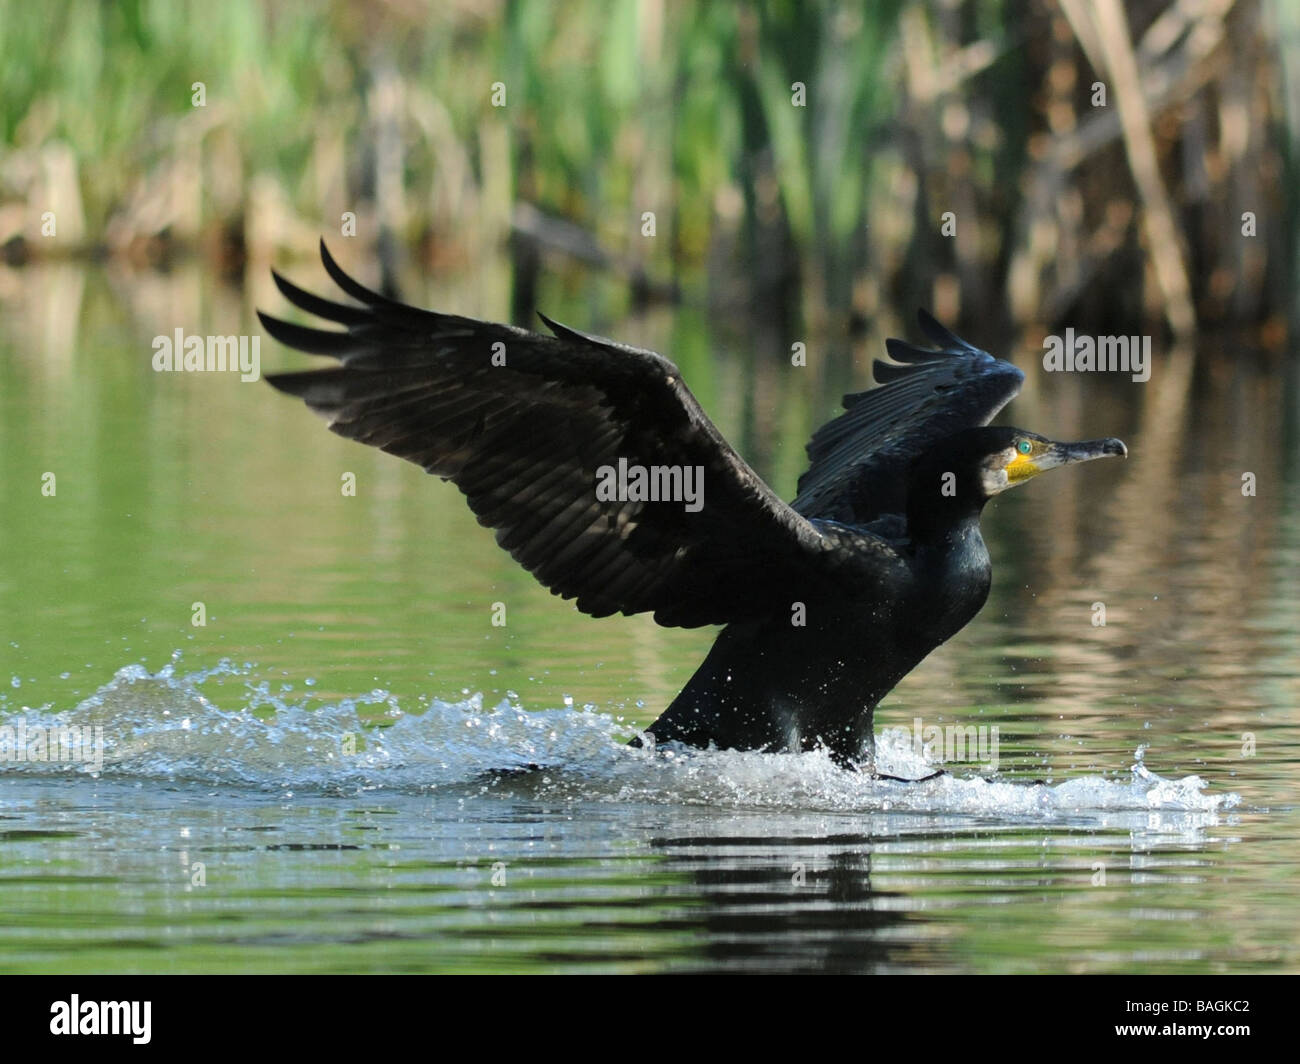 A cormorant or shag coming in to land, home to roost. - Stock Image